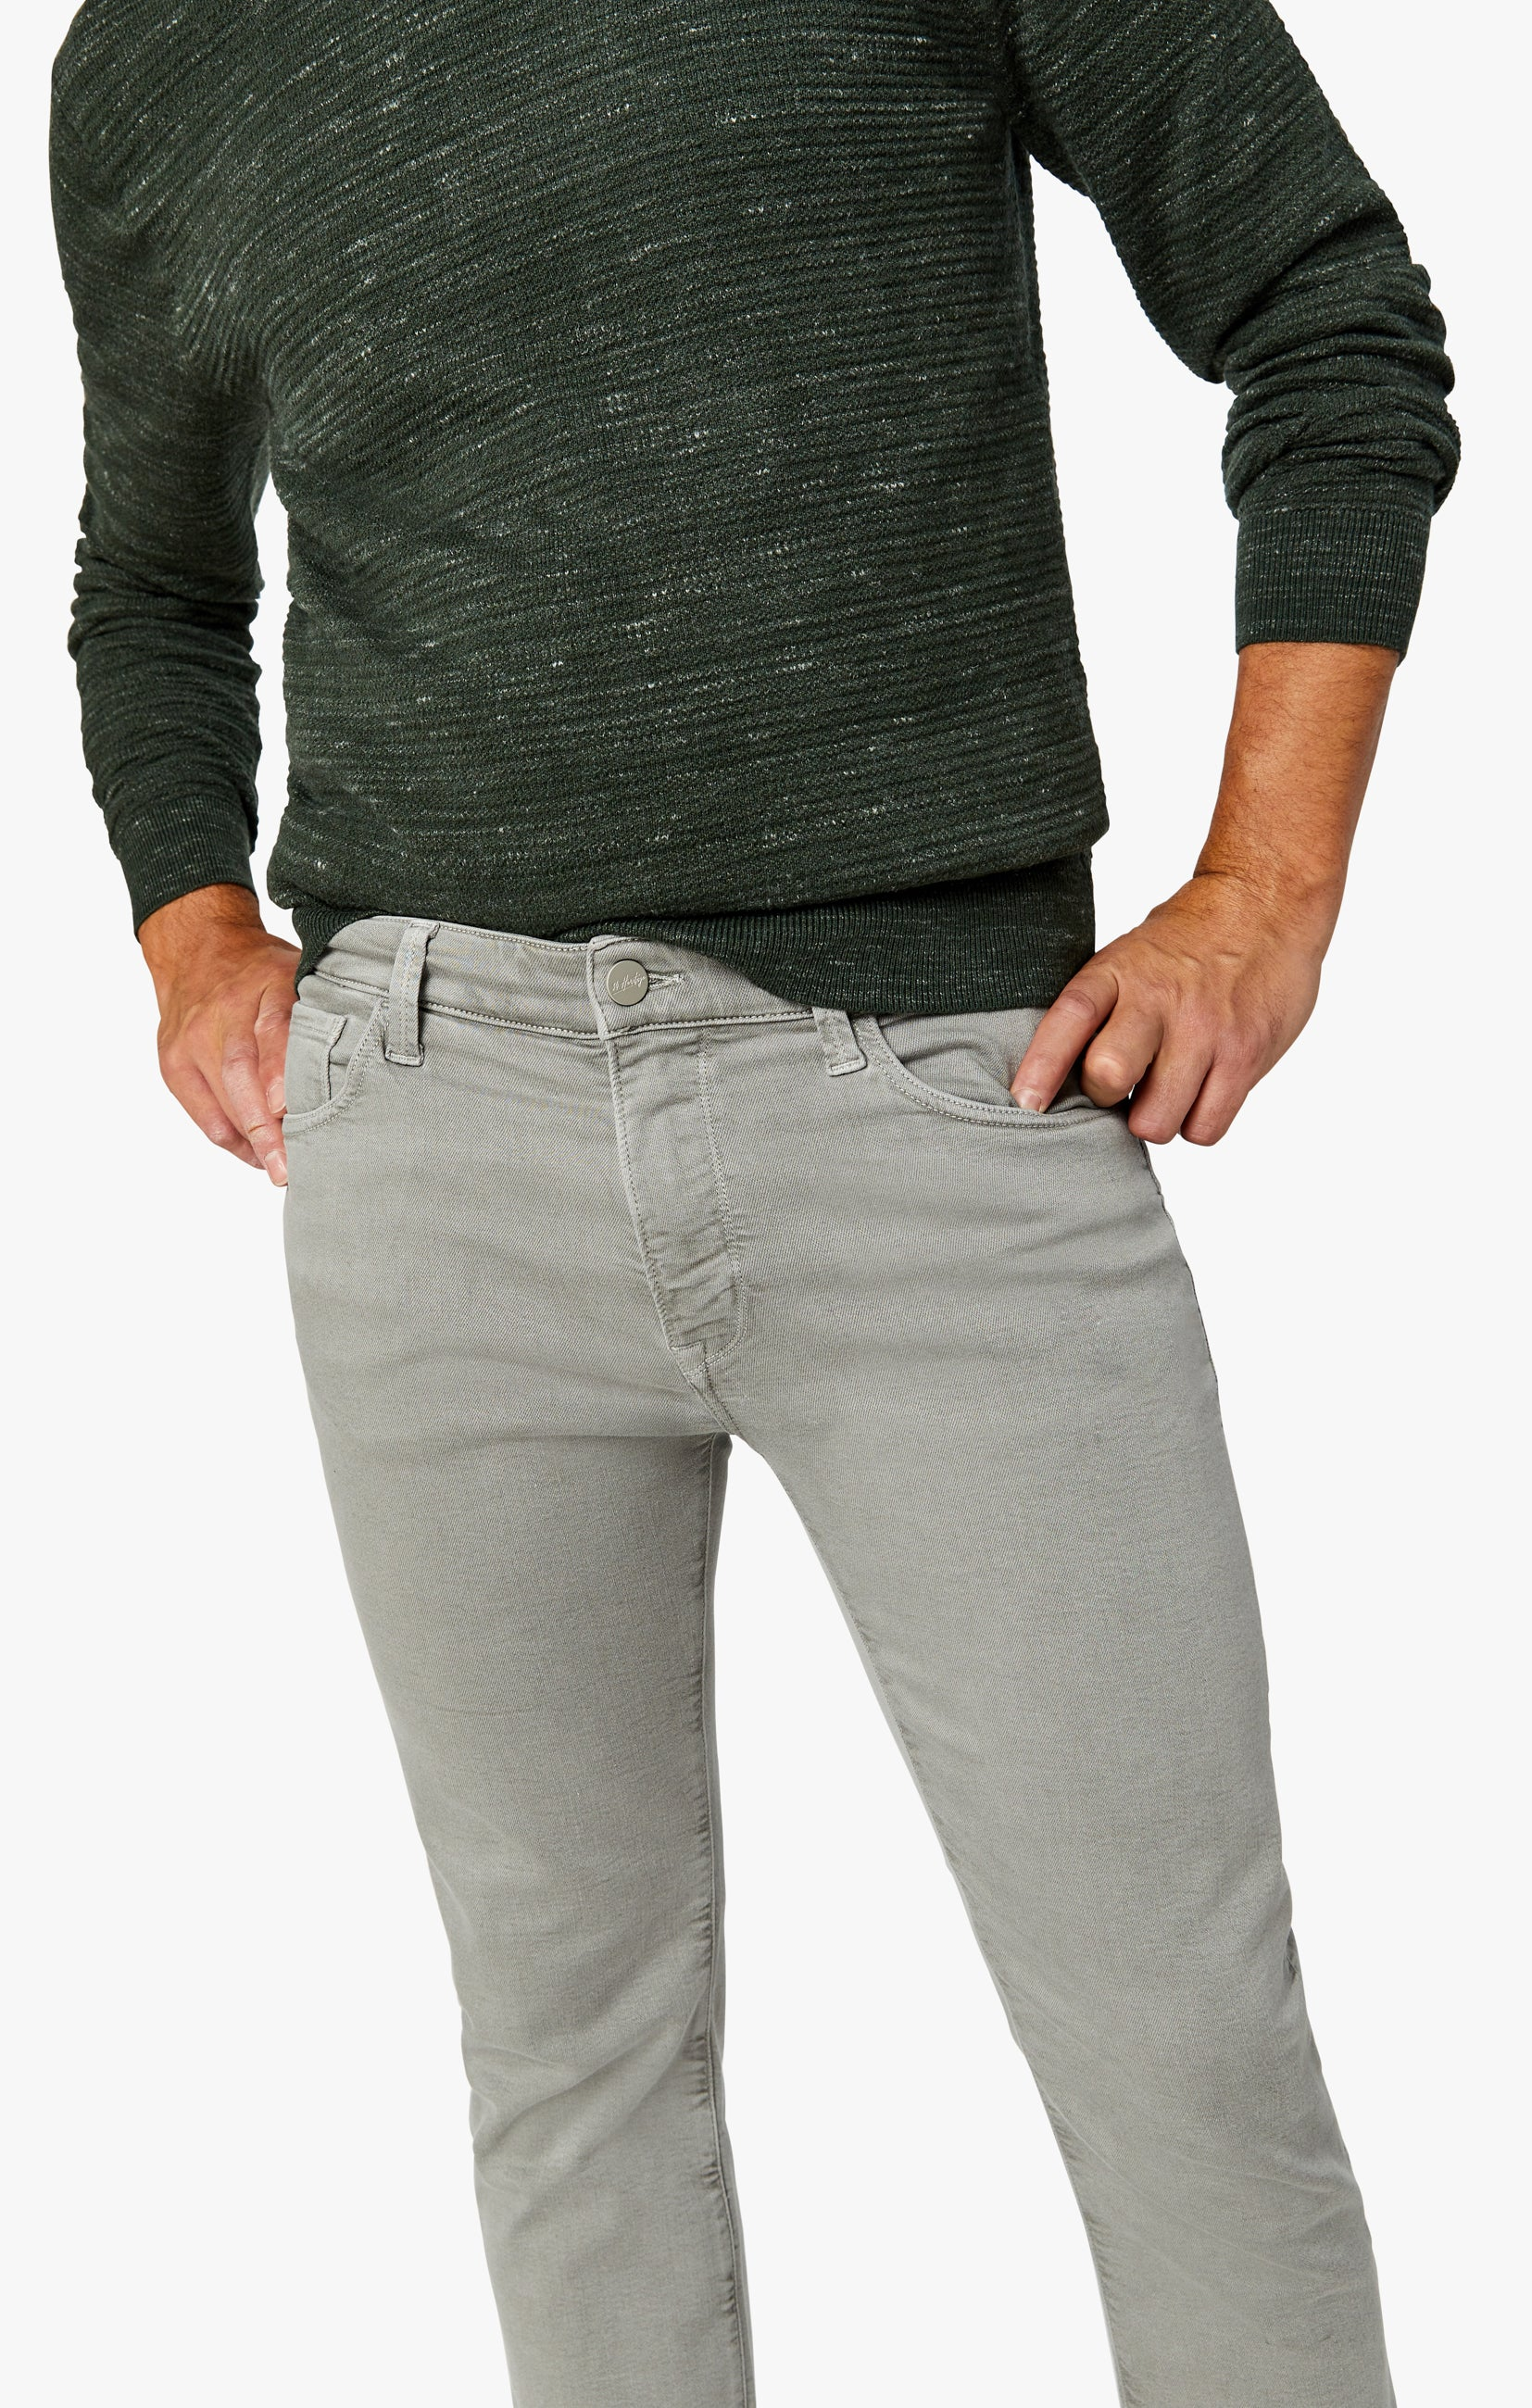 Charisma Classic Fit Jeans in Light Grey Comfort Image 8